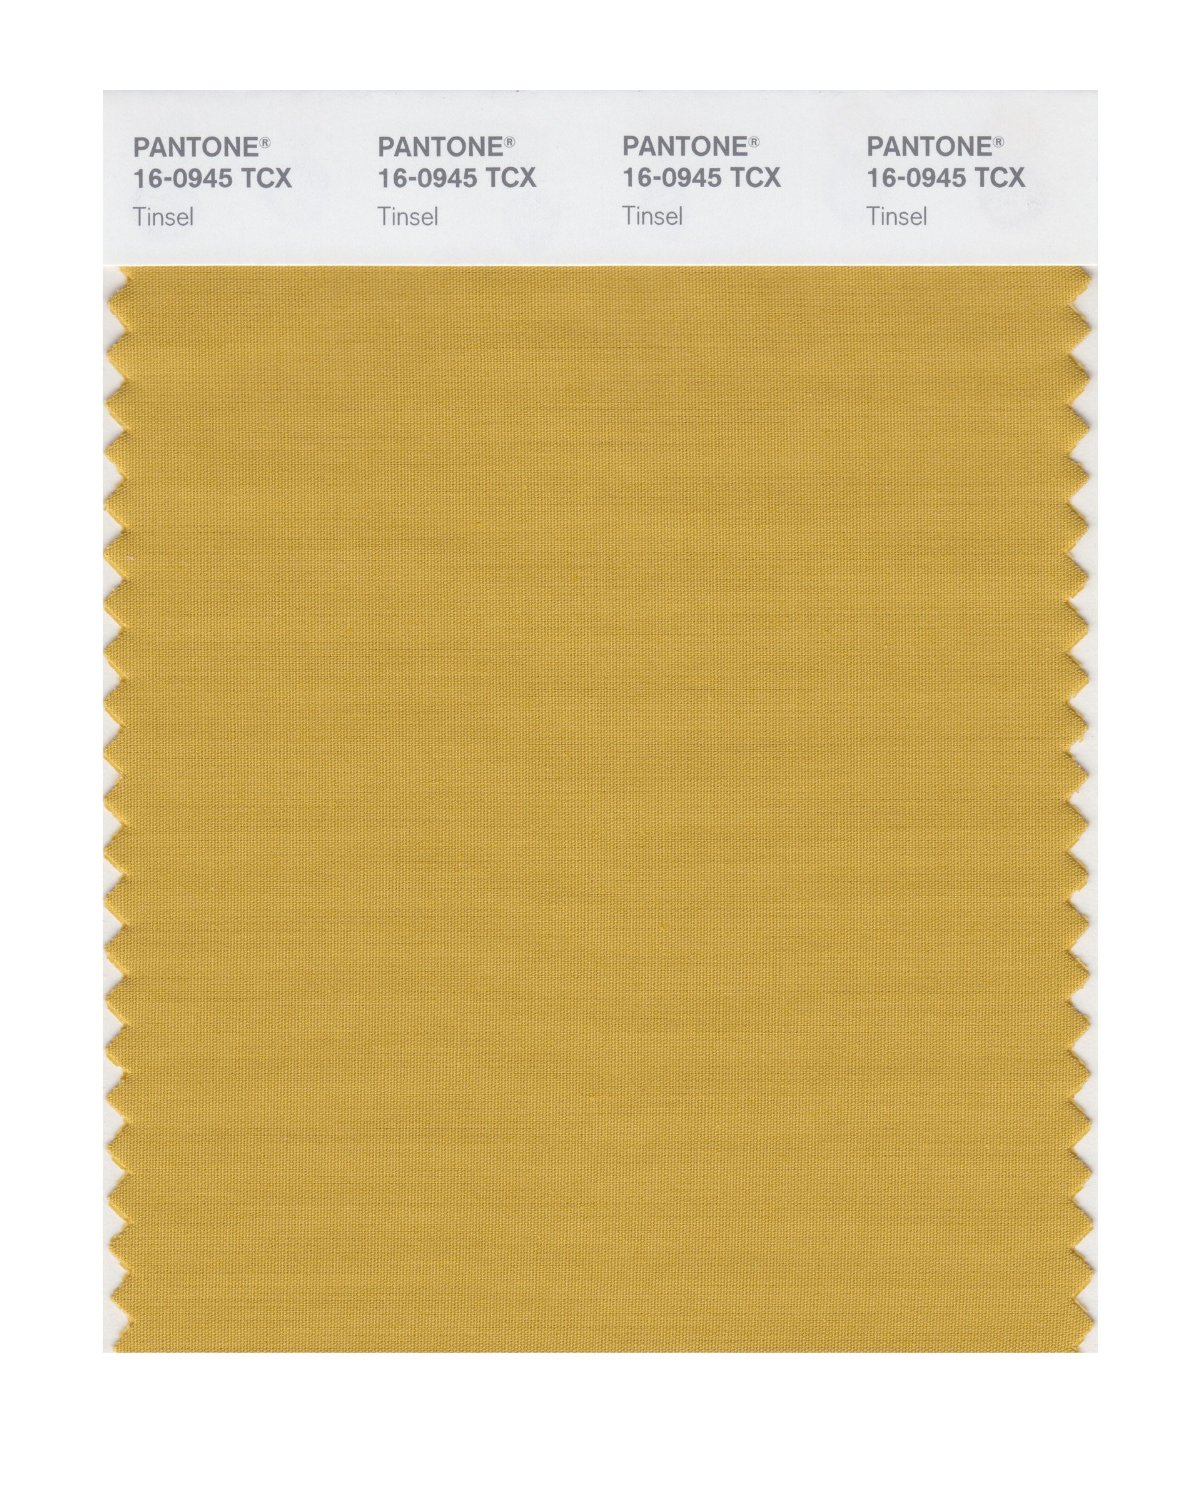 Pantone Smart Swatch 16-0945 Tinsel